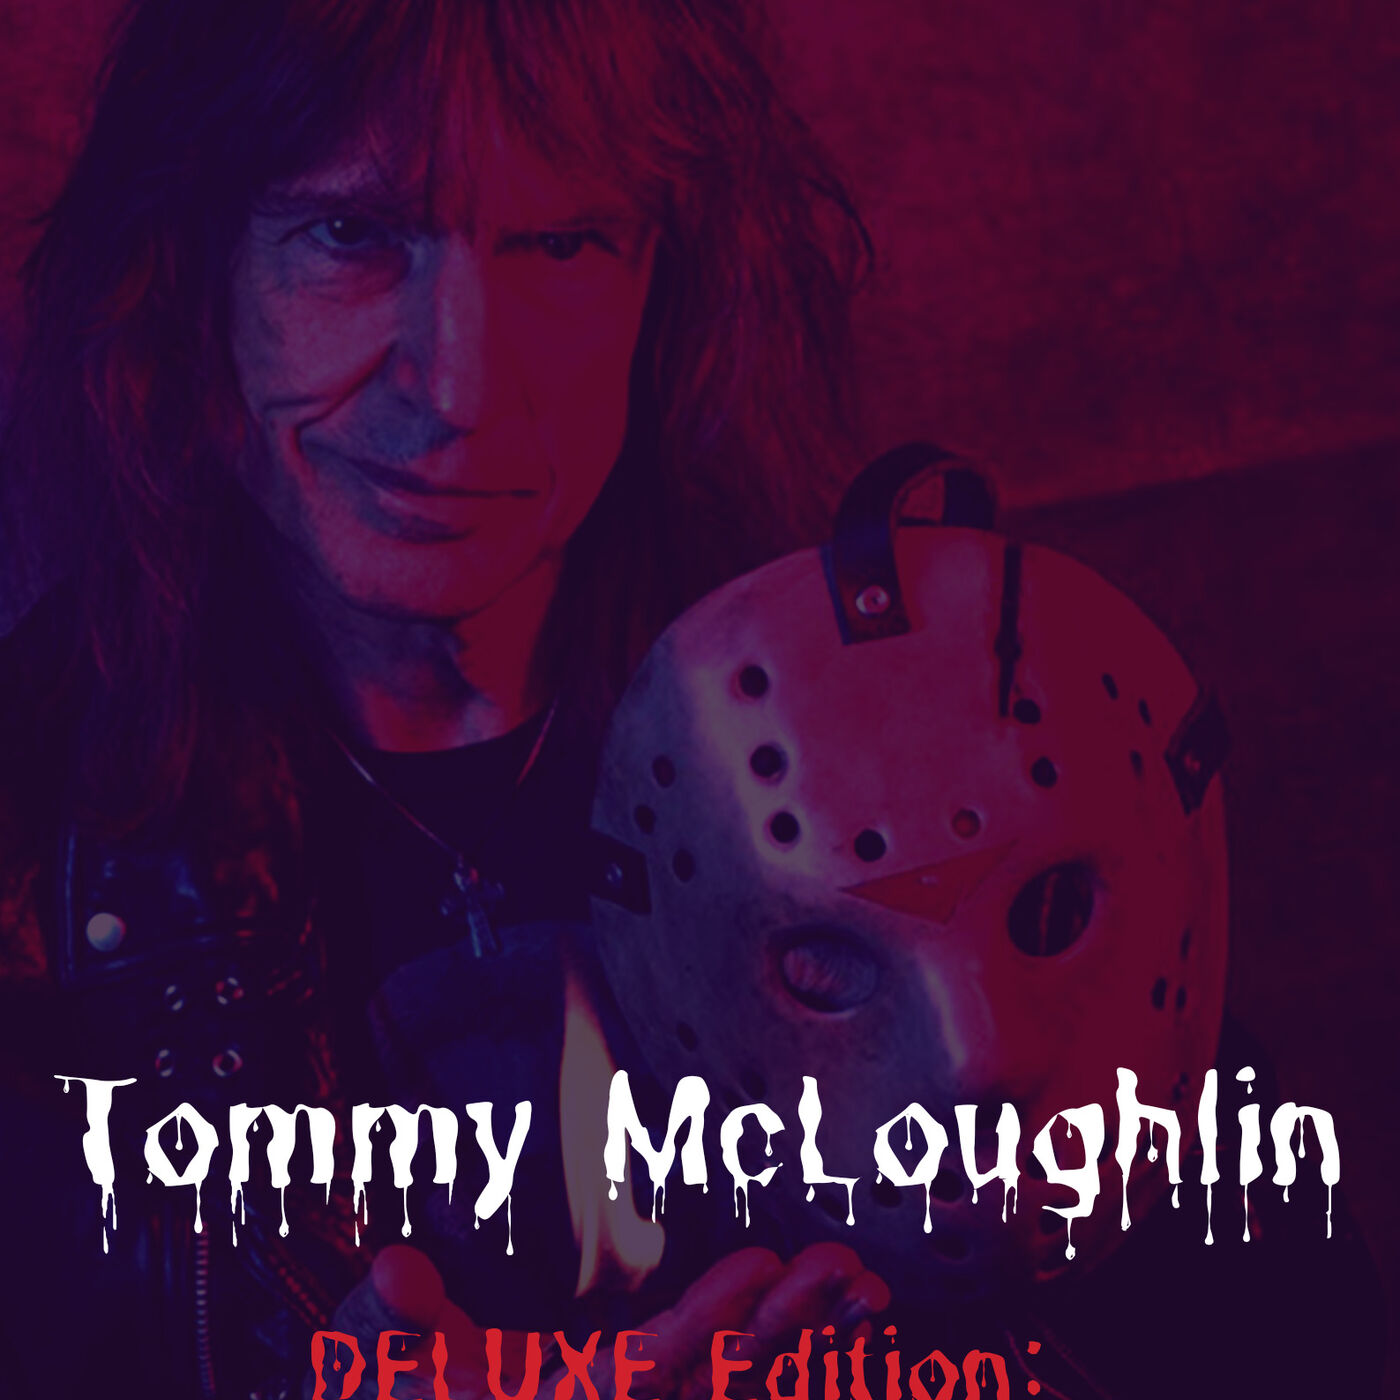 #19 - Jason Never Dies - A Conversation with Tommy McLoughlin - Deluxe Edition: Yet Another Pop Culture Podcast